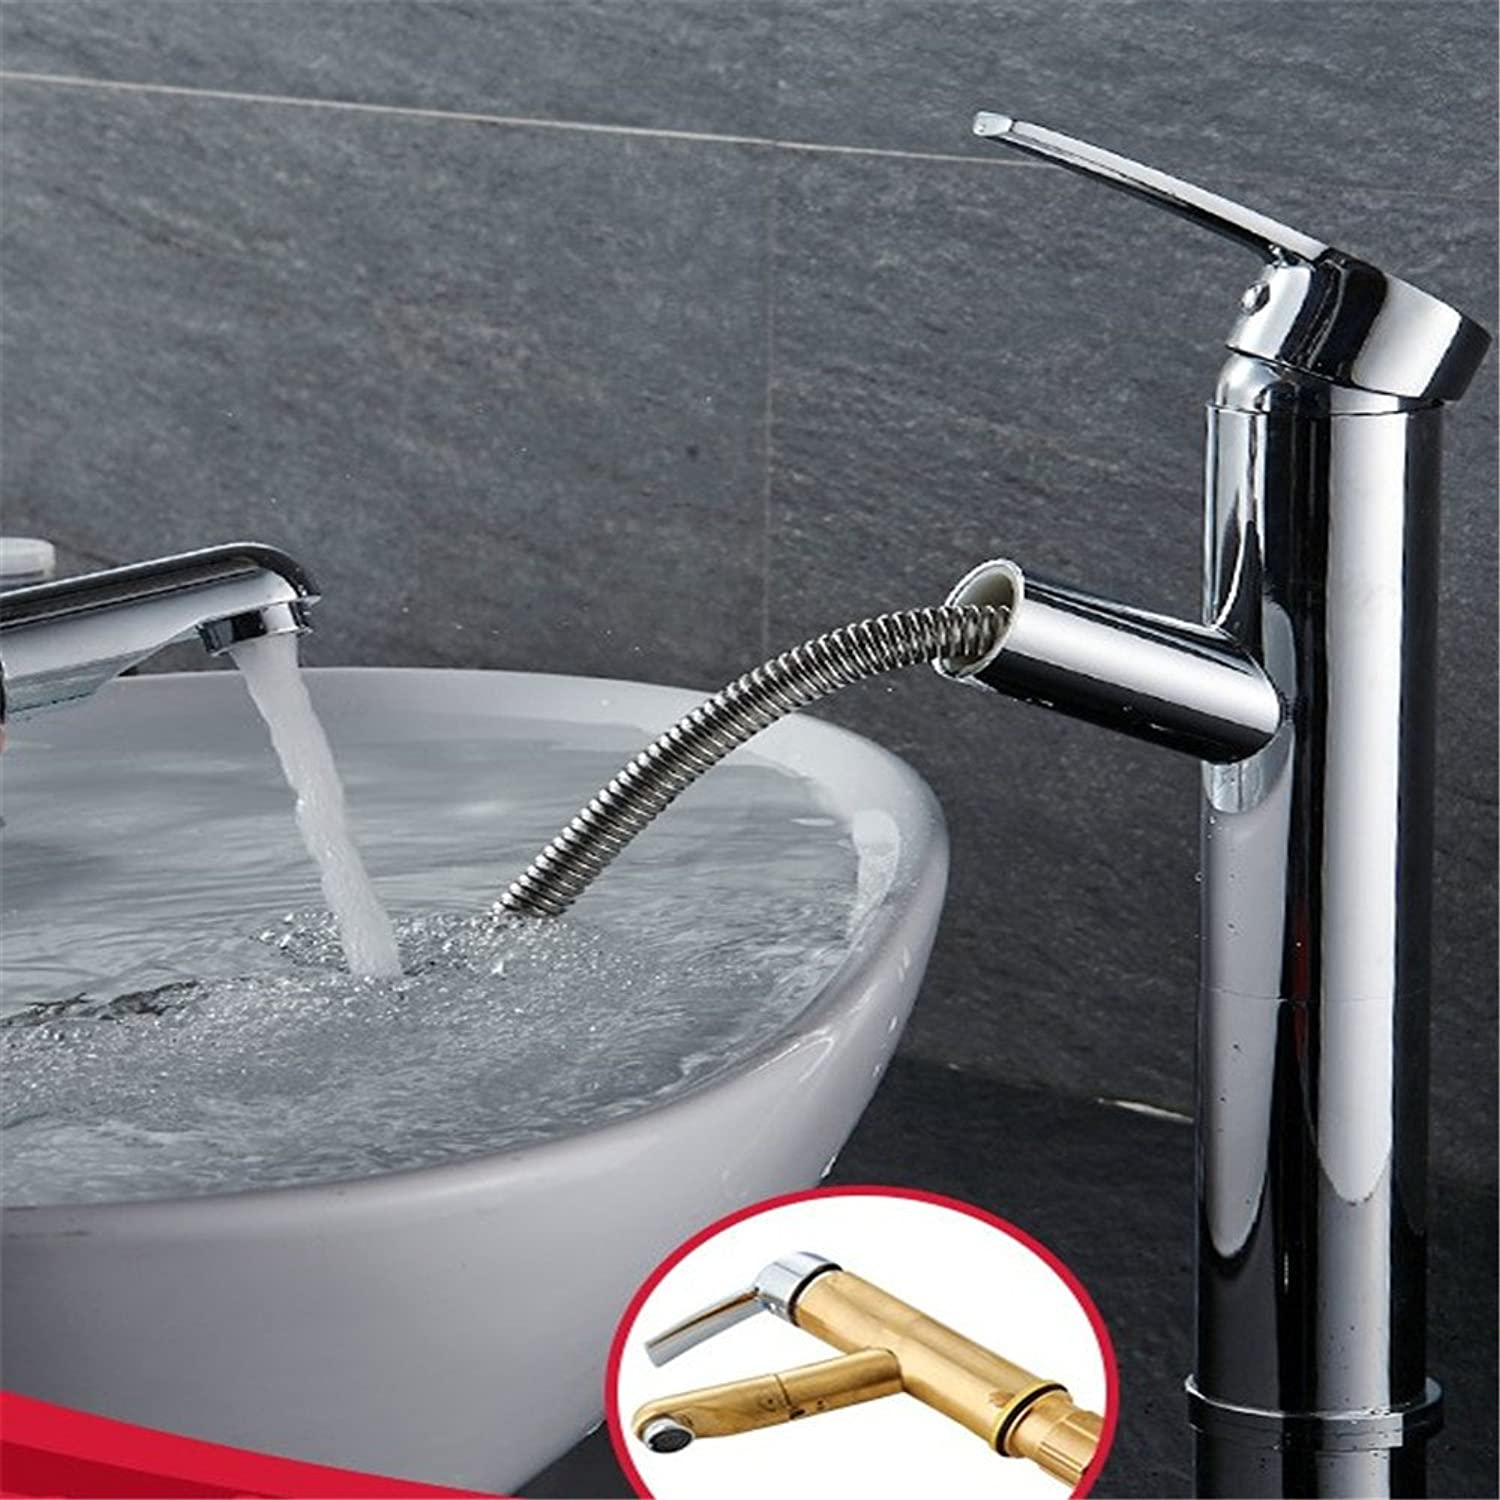 LHbox Basin Mixer Tap Bathroom Sink Faucet All copper pull faucet hot and cold basin wash-hand basin single hole basin mixer round plated with high scalability